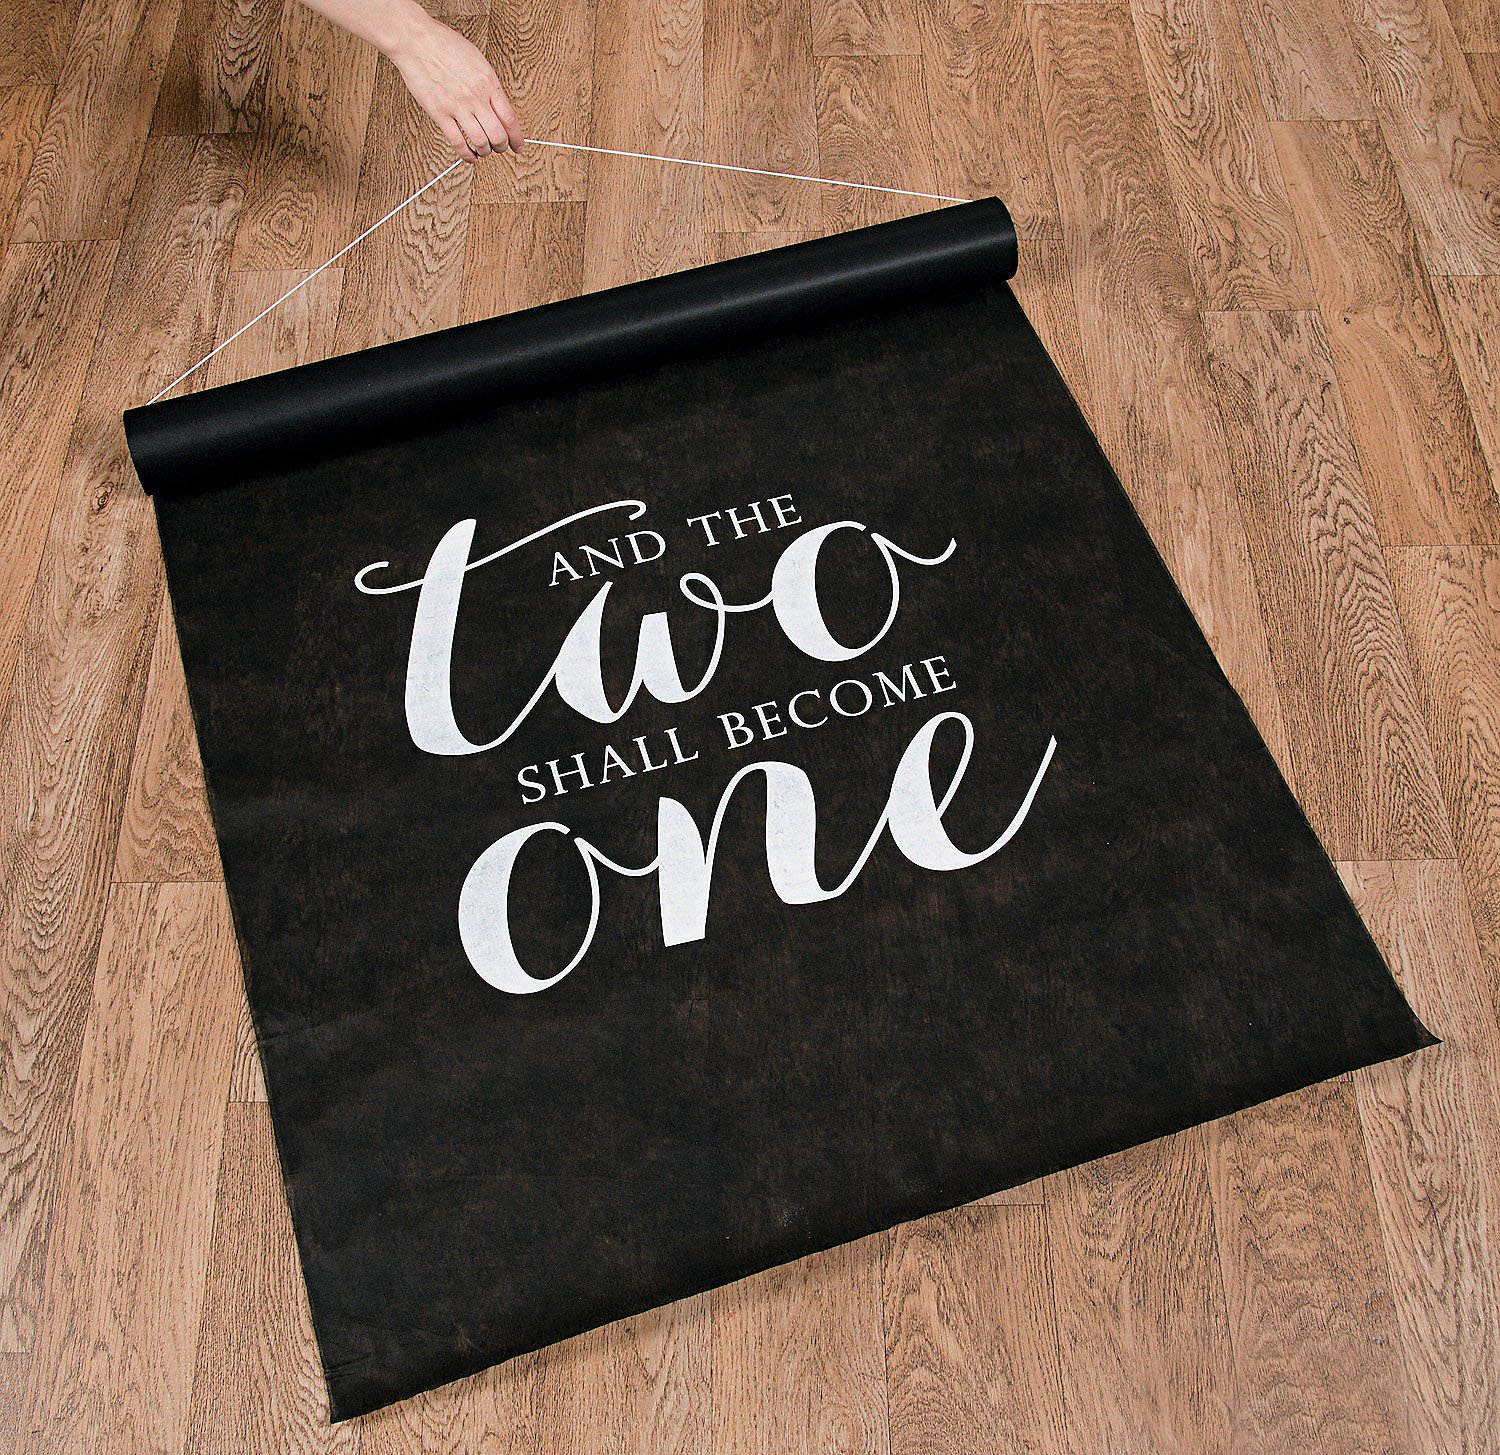 Unbranded 100 FT Black and The Two Shall Become ONE Wedding Aisle Runner Long Bridal